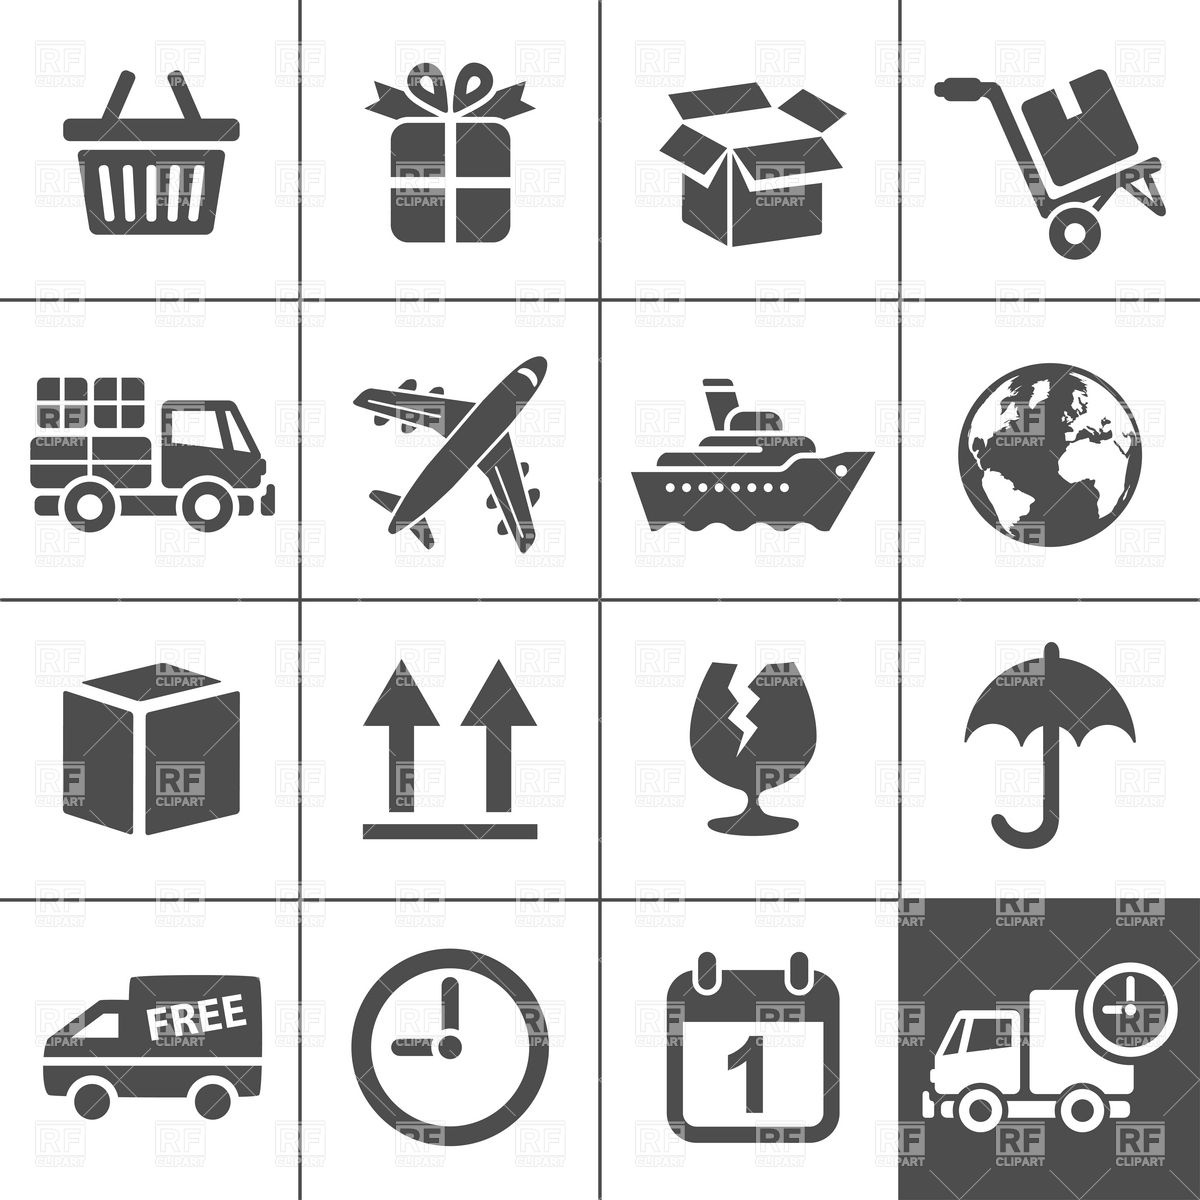 Free Logistics Icons and Clip Art